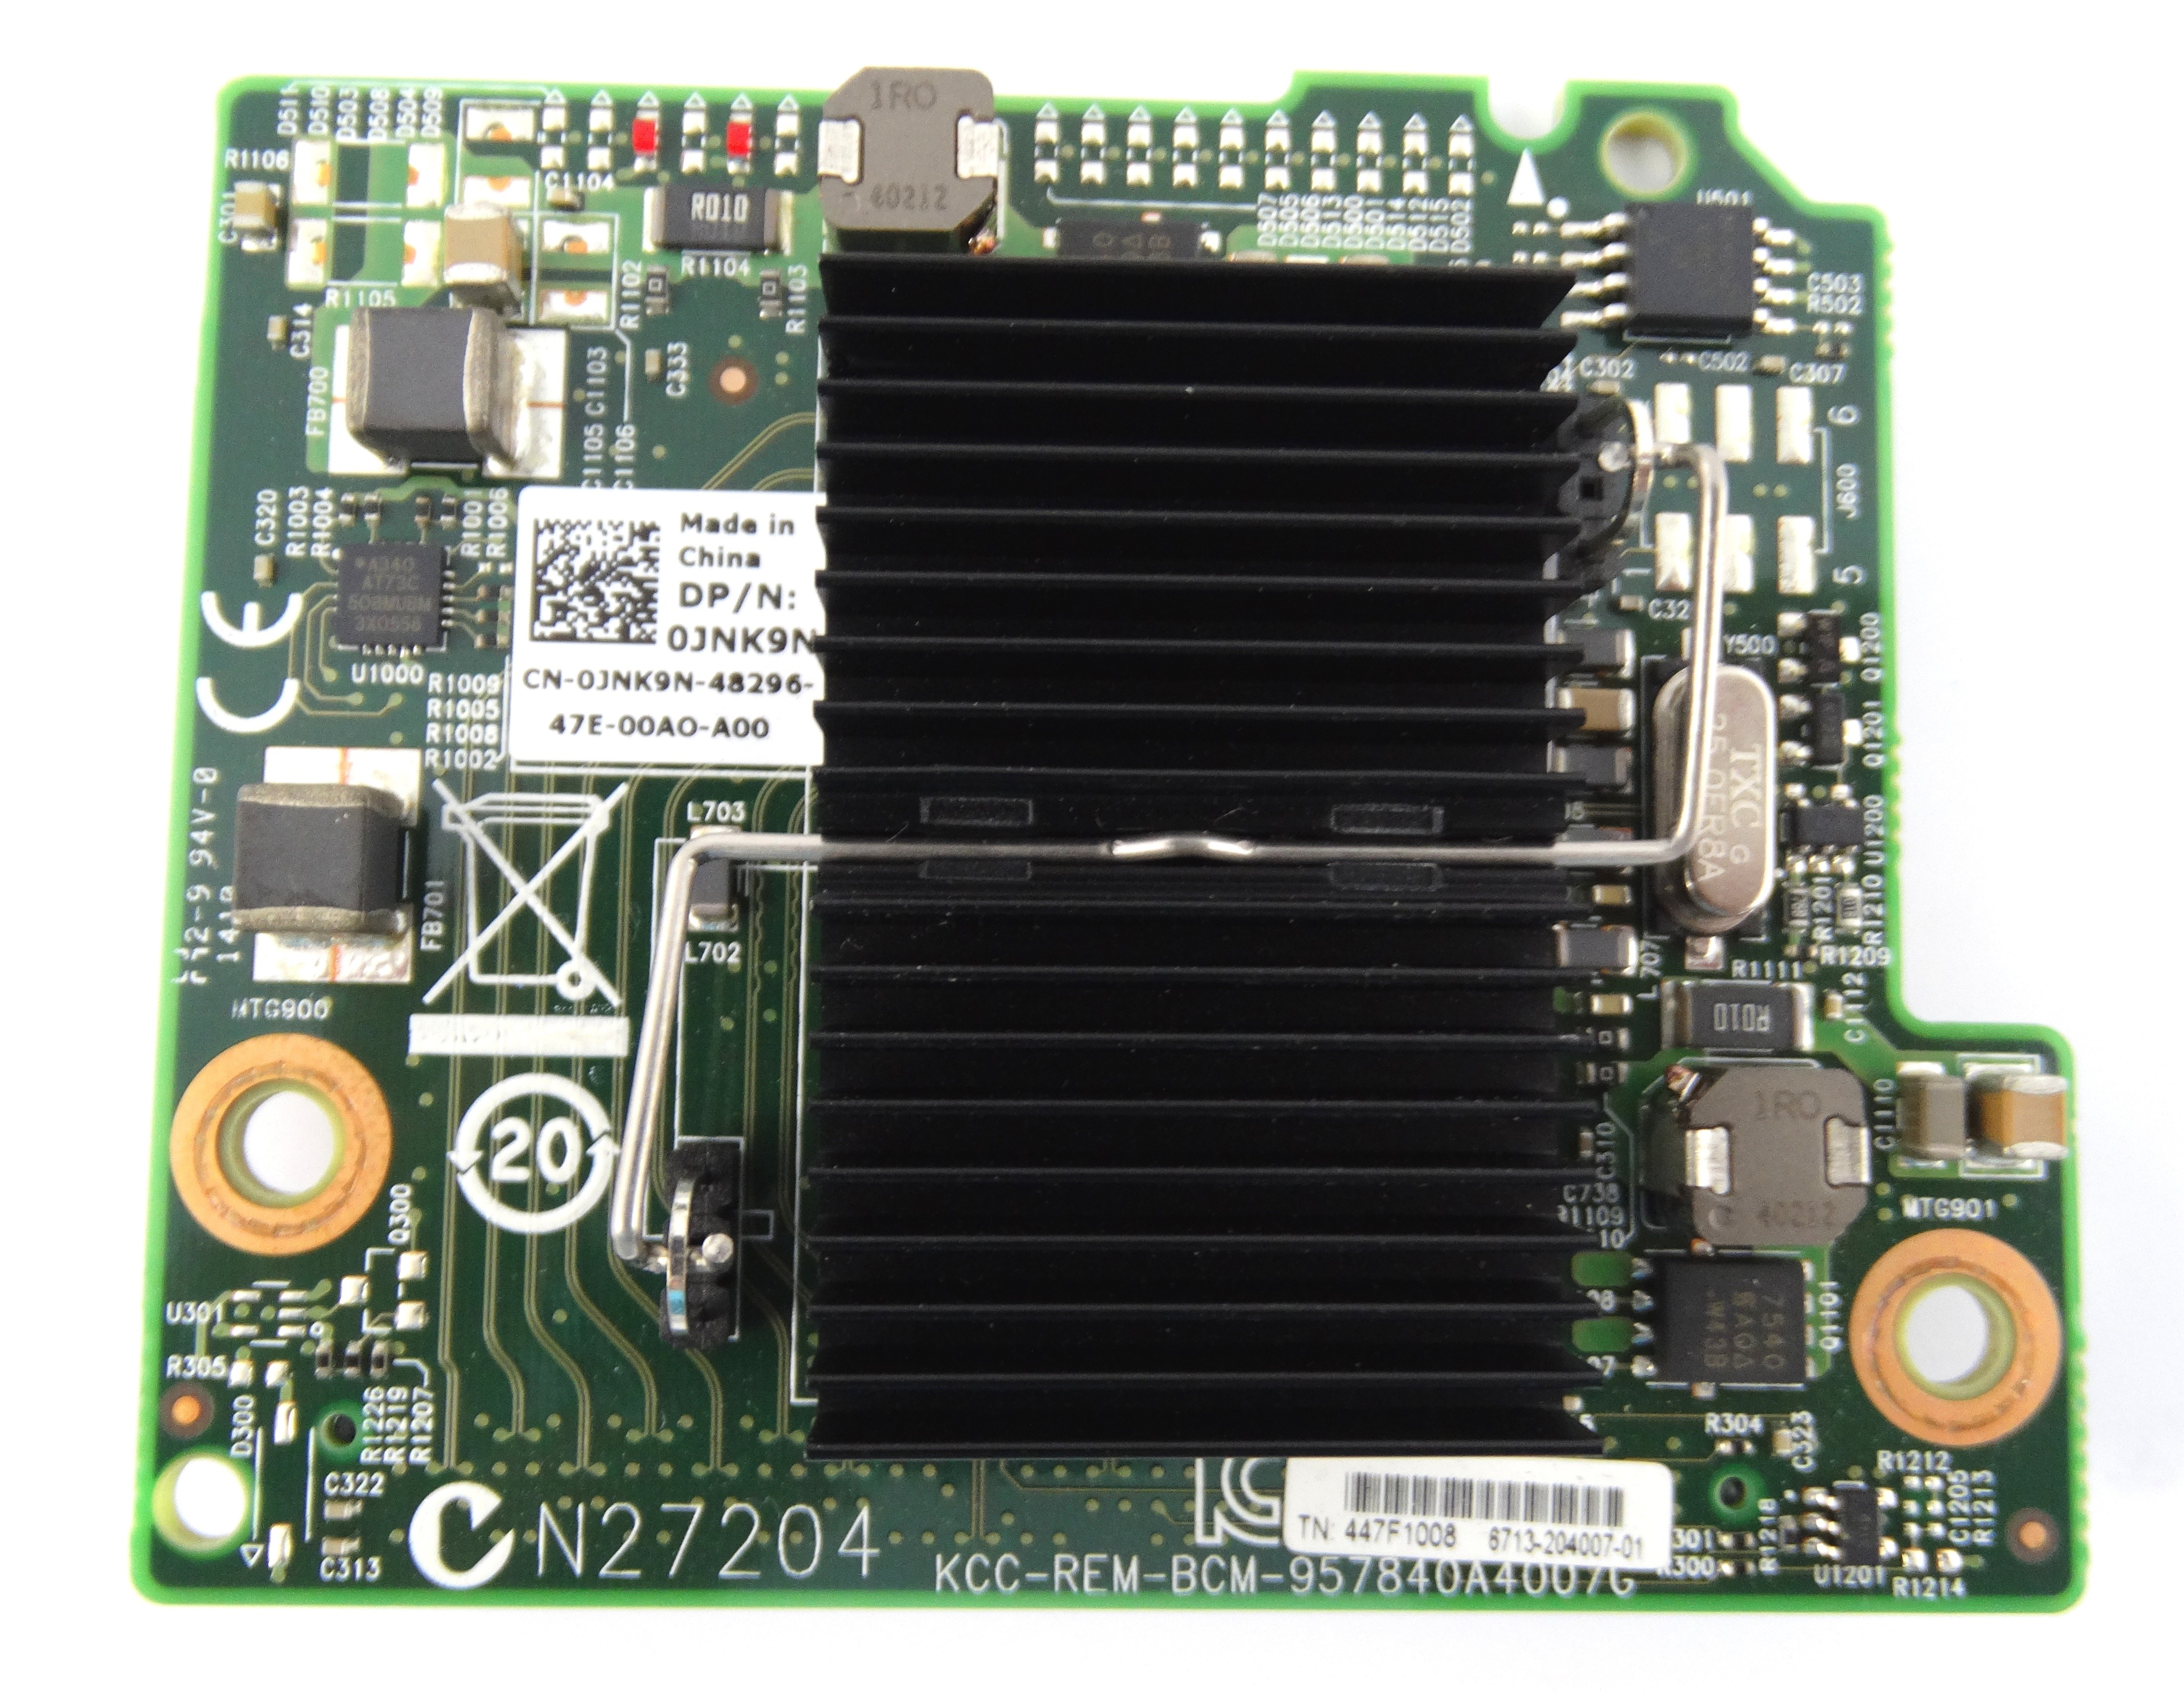 Dell Broadcom 10Gbe 4 Port Daughter Card (JNK9N)